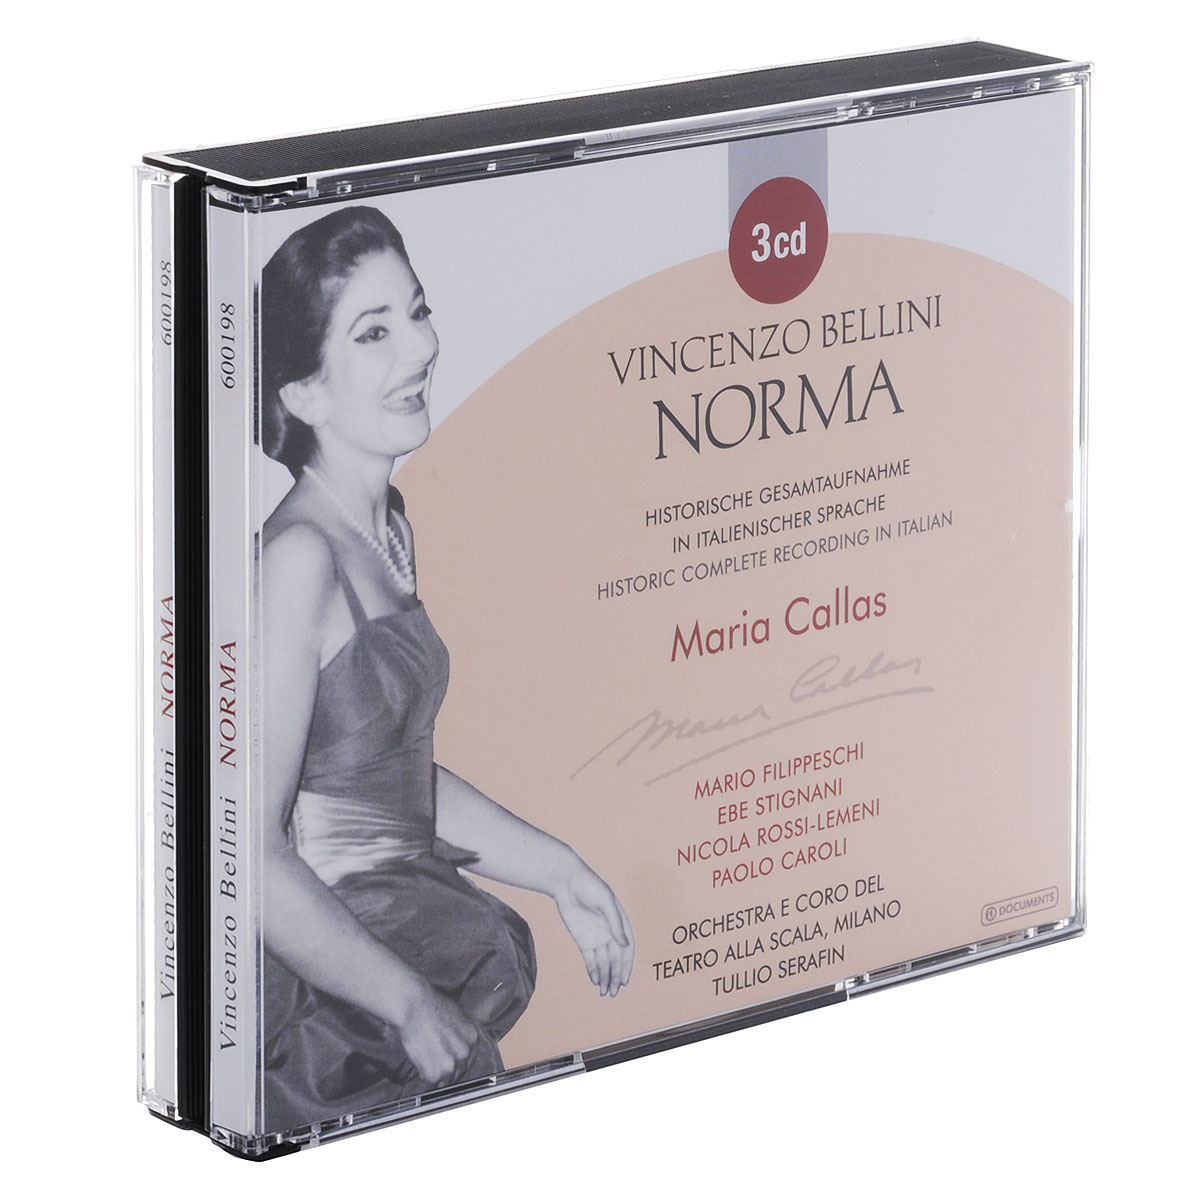 Мария Каллас Maria Callas. Vincenzo Bellini. Norma (3 CD)